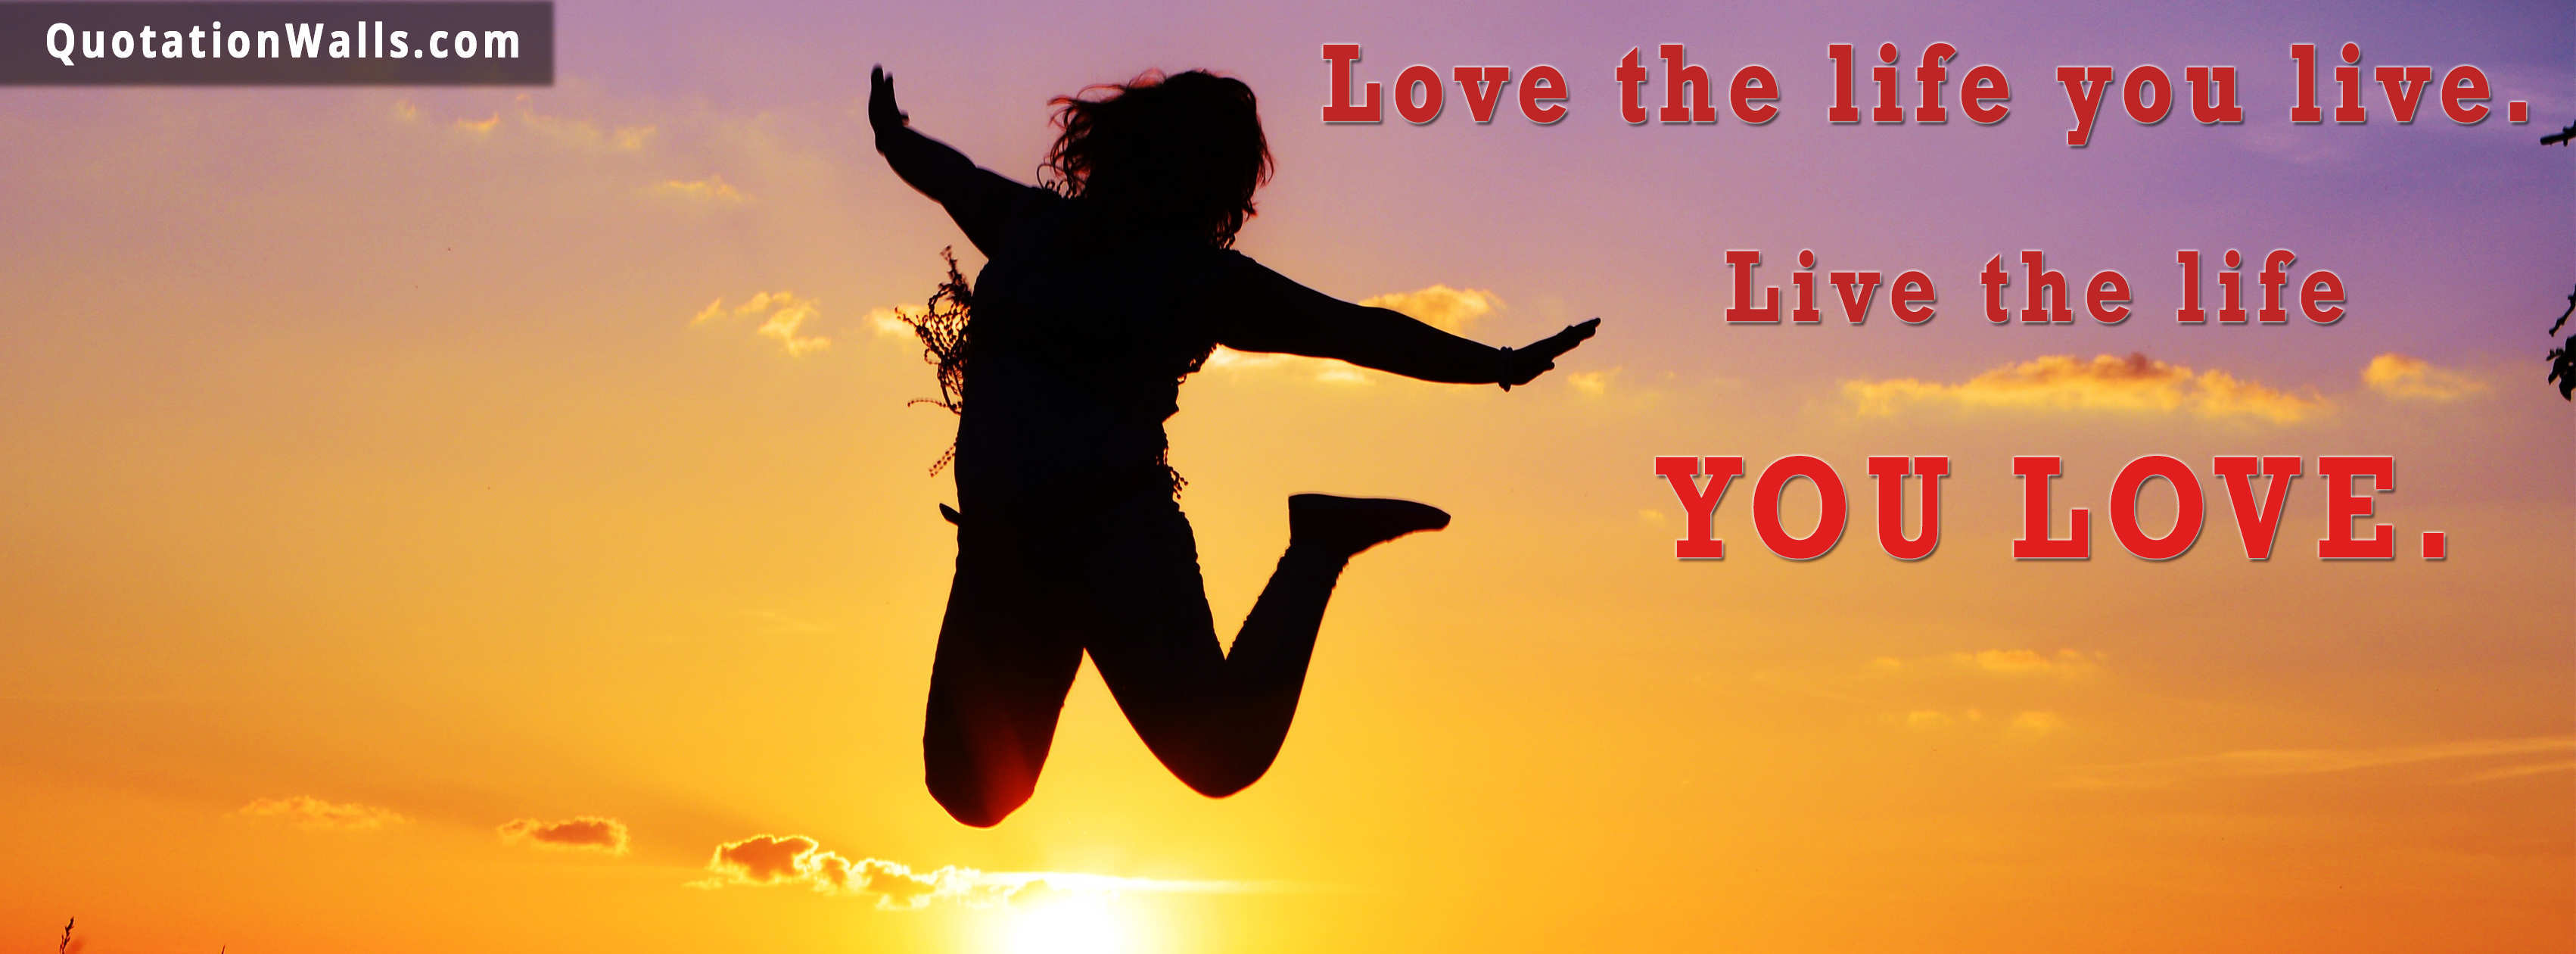 Love Life Life Facebook Cover Photo - QuotationWalls